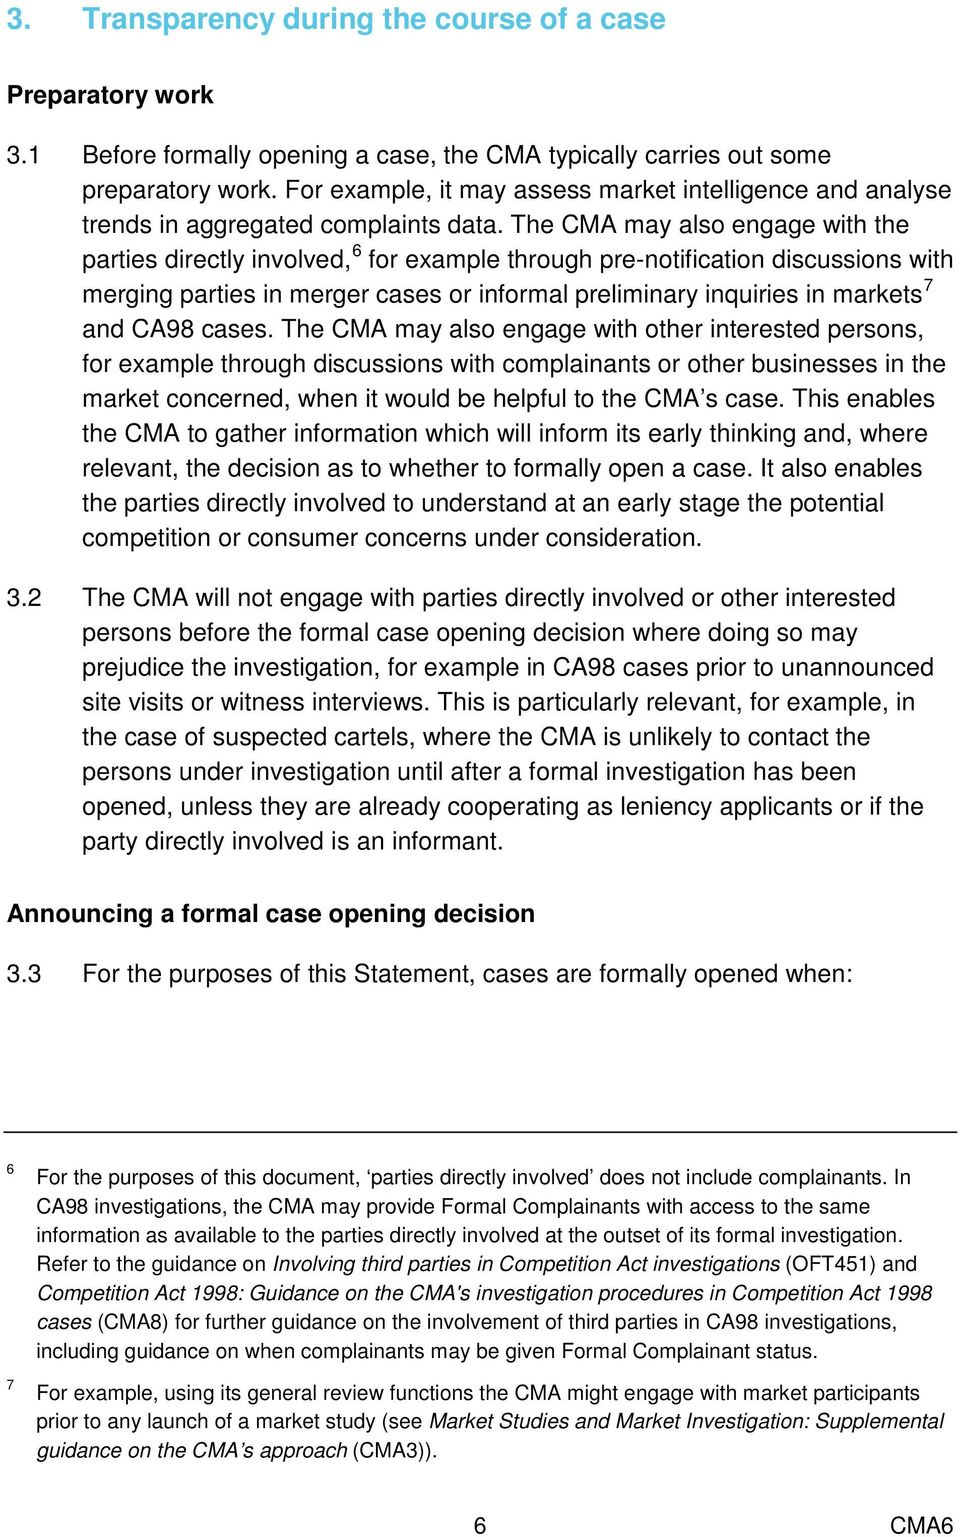 The CMA may also engage with the parties directly involved, 6 for example through pre-notification discussions with merging parties in merger cases or informal preliminary inquiries in markets 7 and